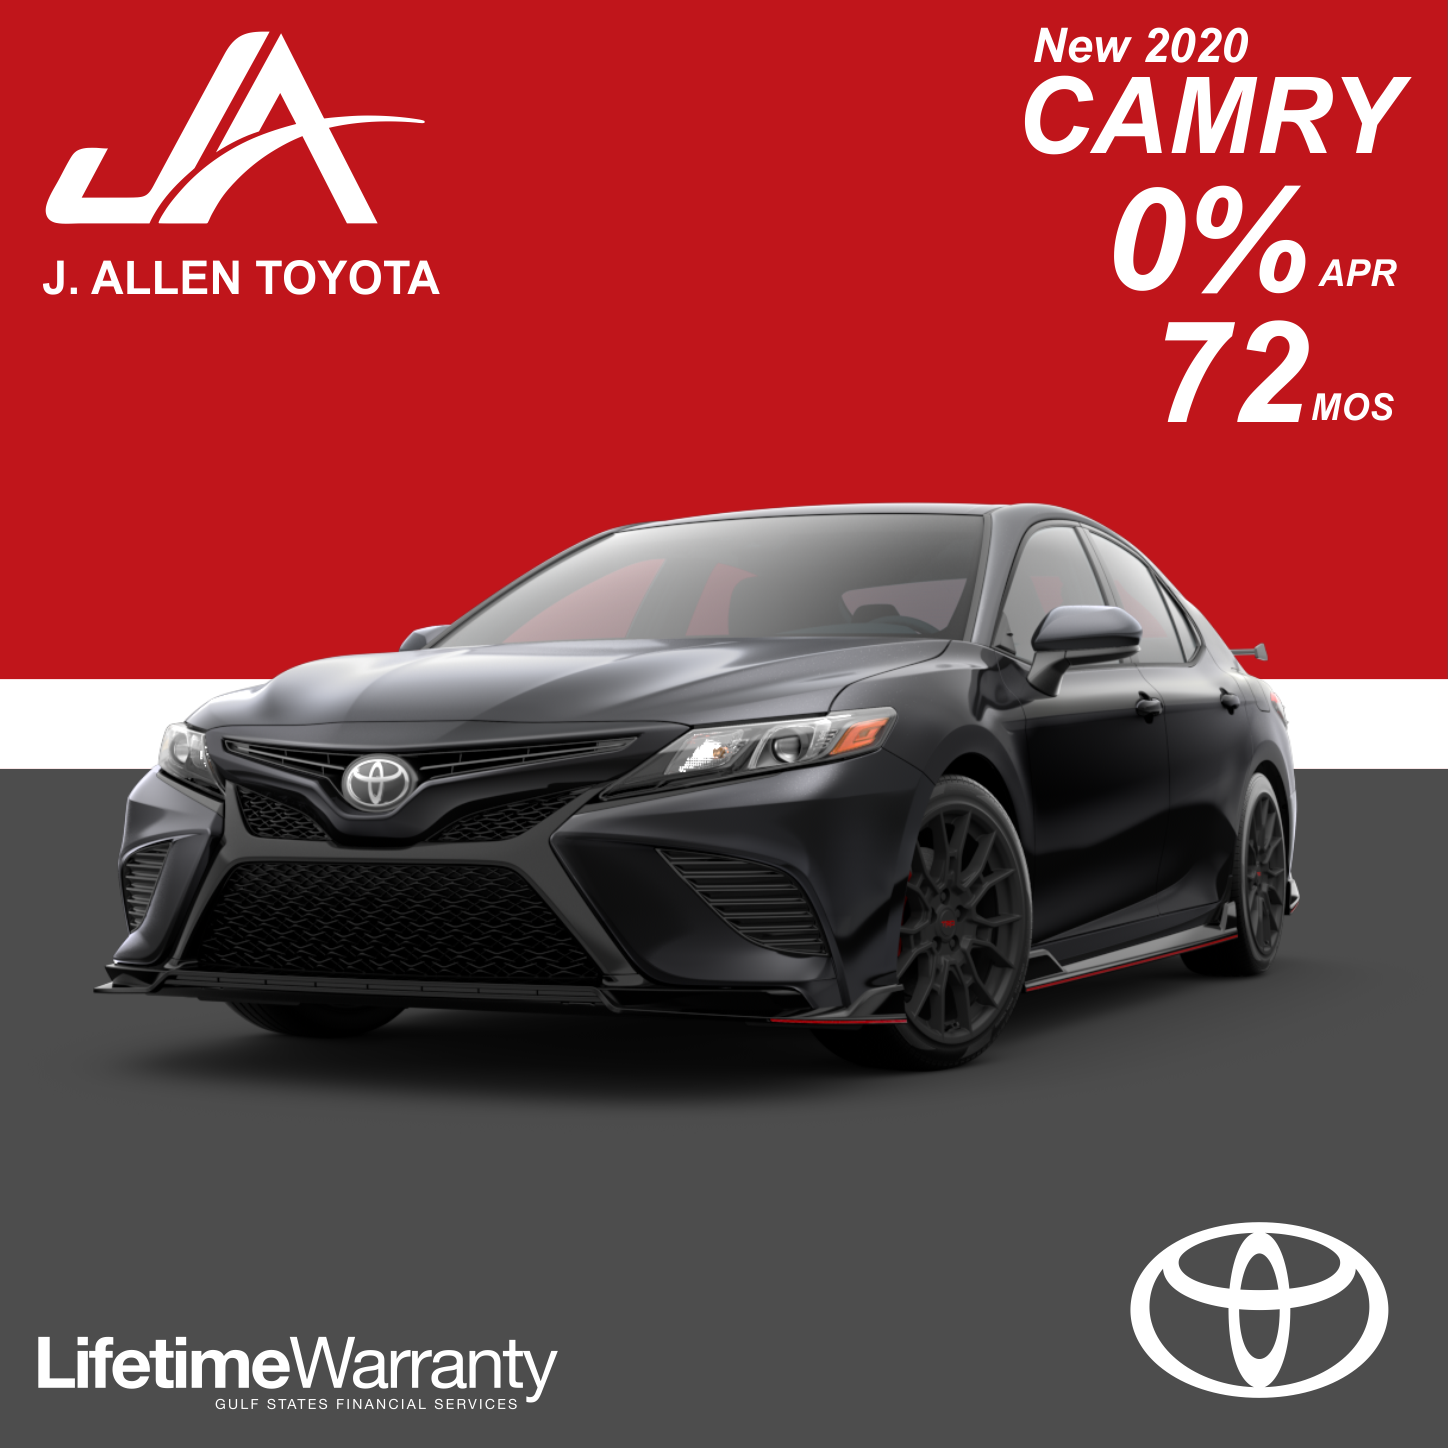 New 2020 Camry Financing Special